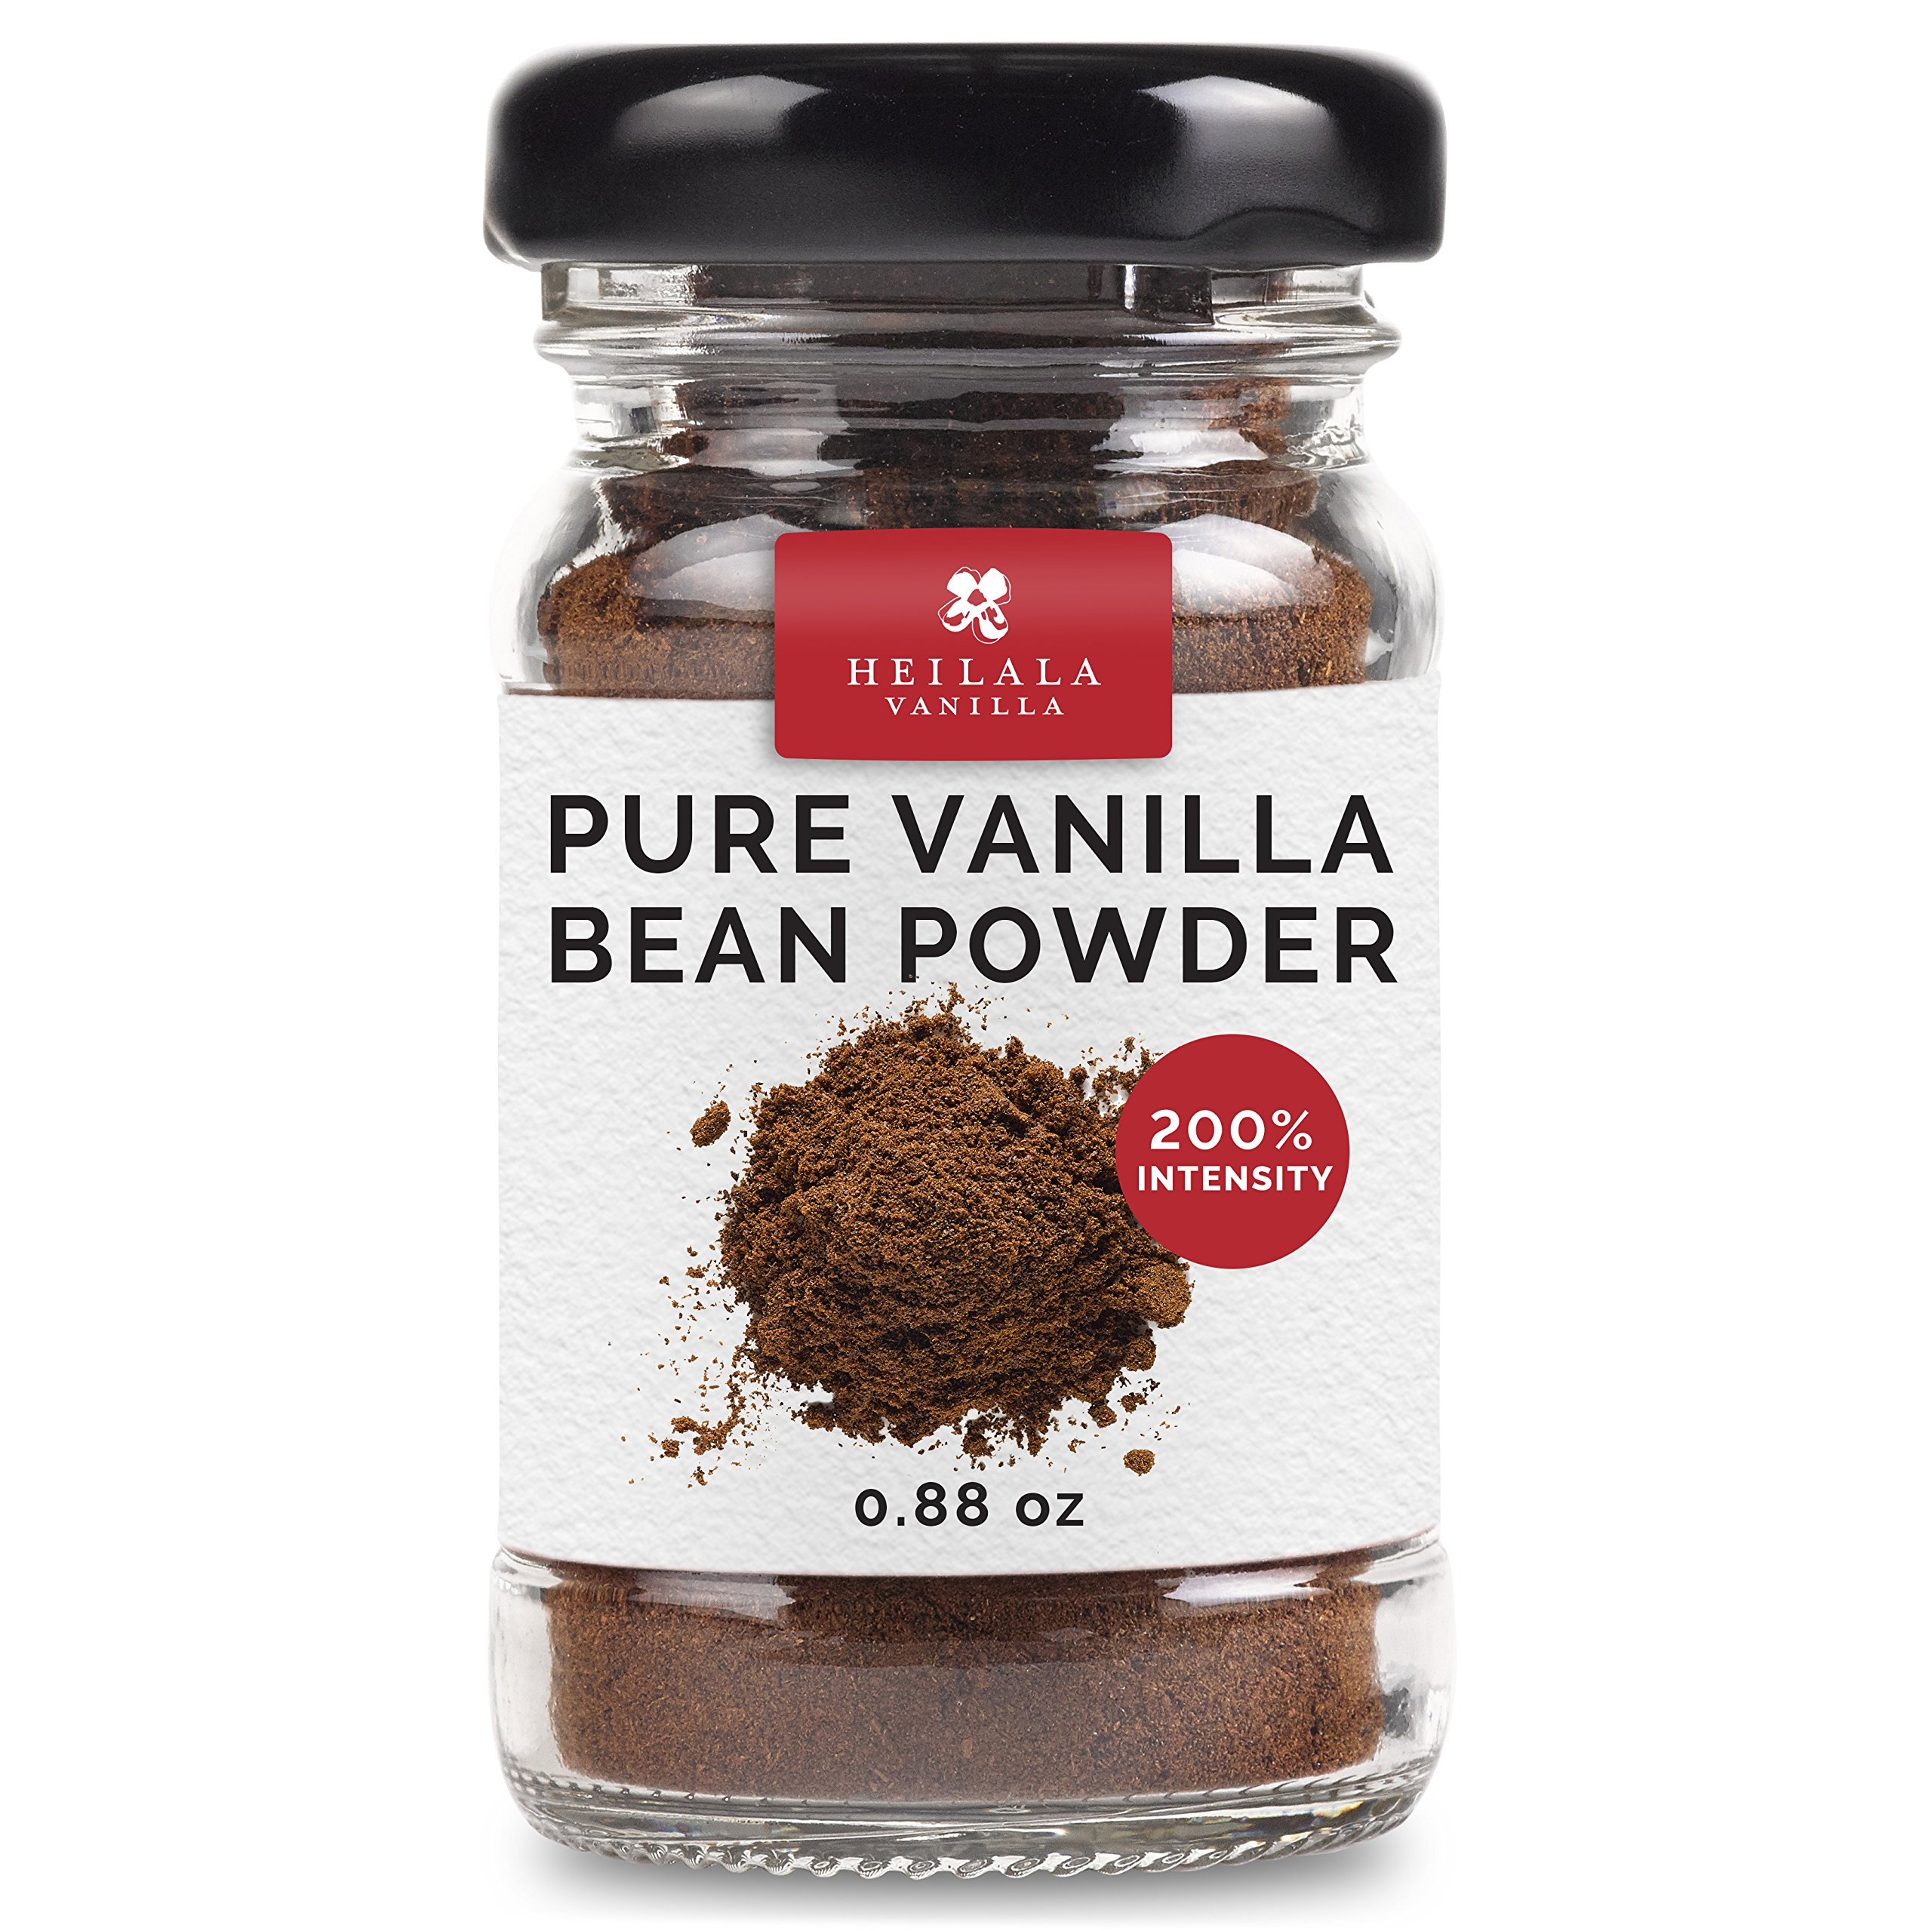 Pure Ground Vanilla Bean Powder - 100% Ground Gourmet Vanilla, Organically Farmed & Grown in Tonga, Hand Picked Pods, Alcohol Free, Sugar Free, Keto, Award Winning - Perfect for Raw Recipes